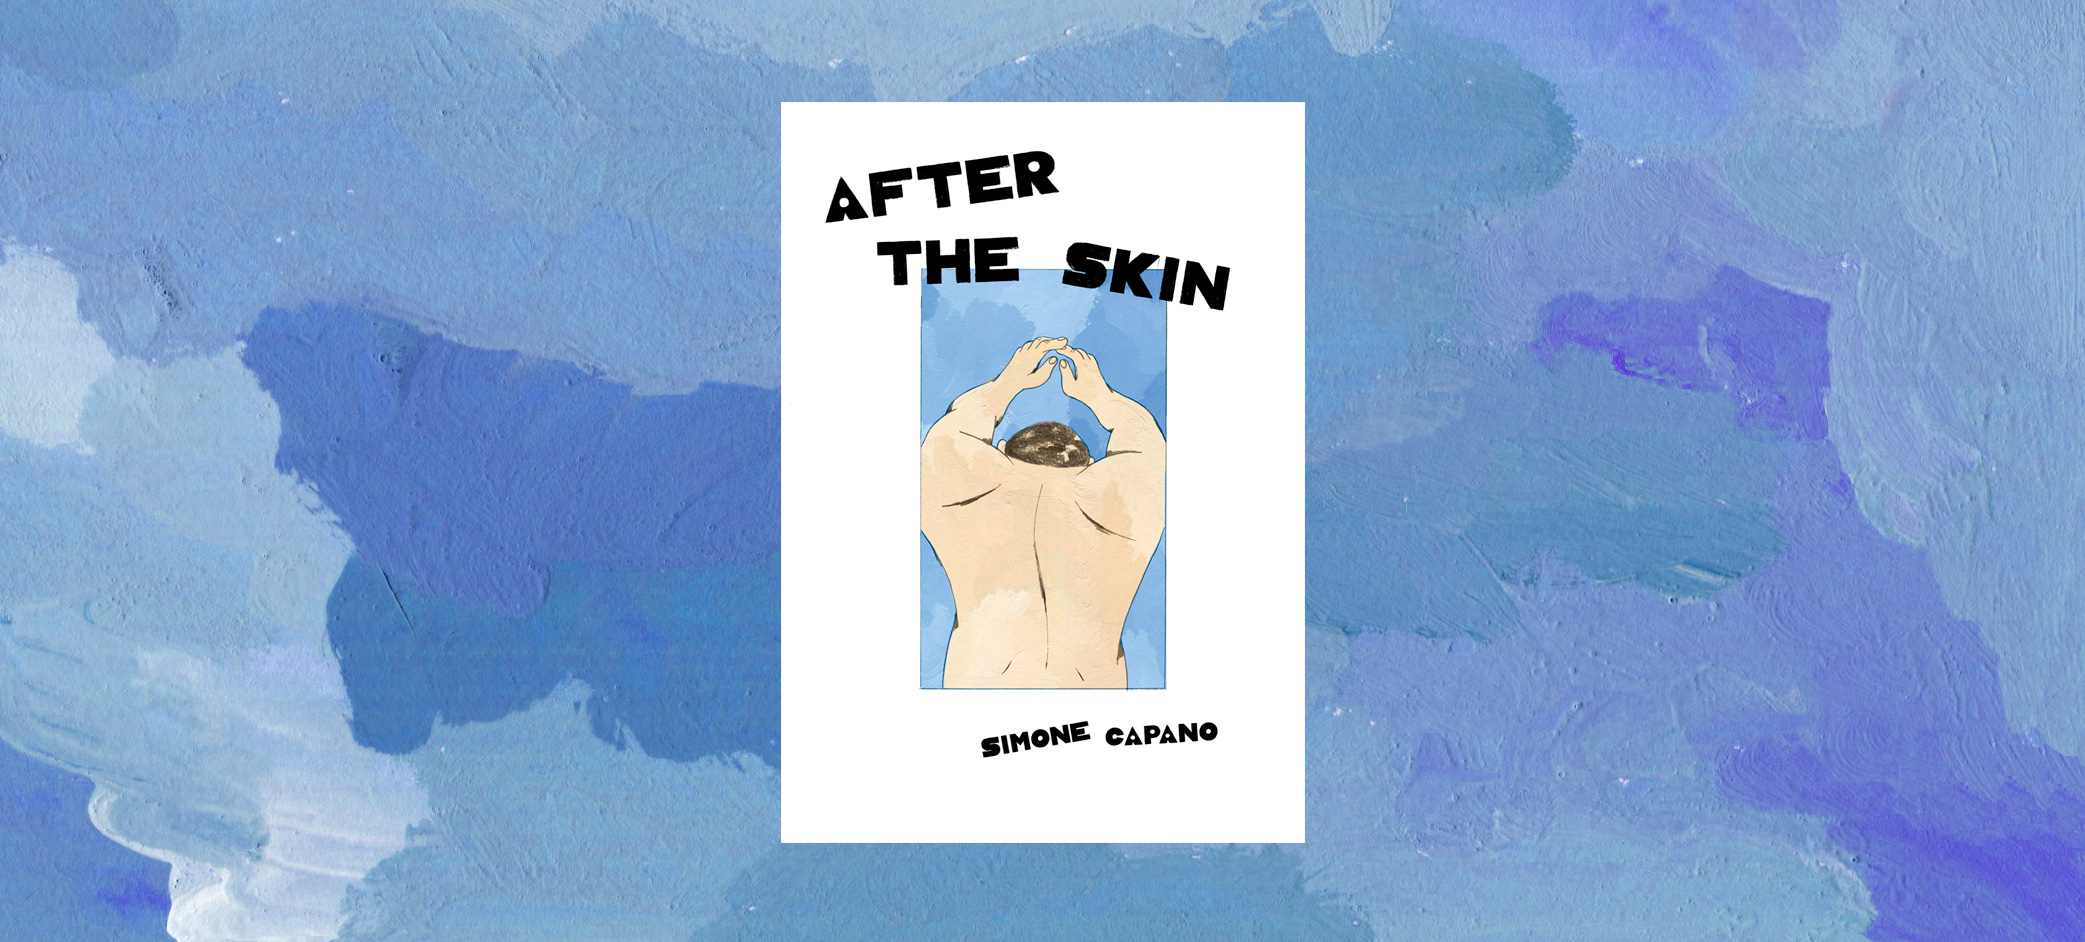 After the skin